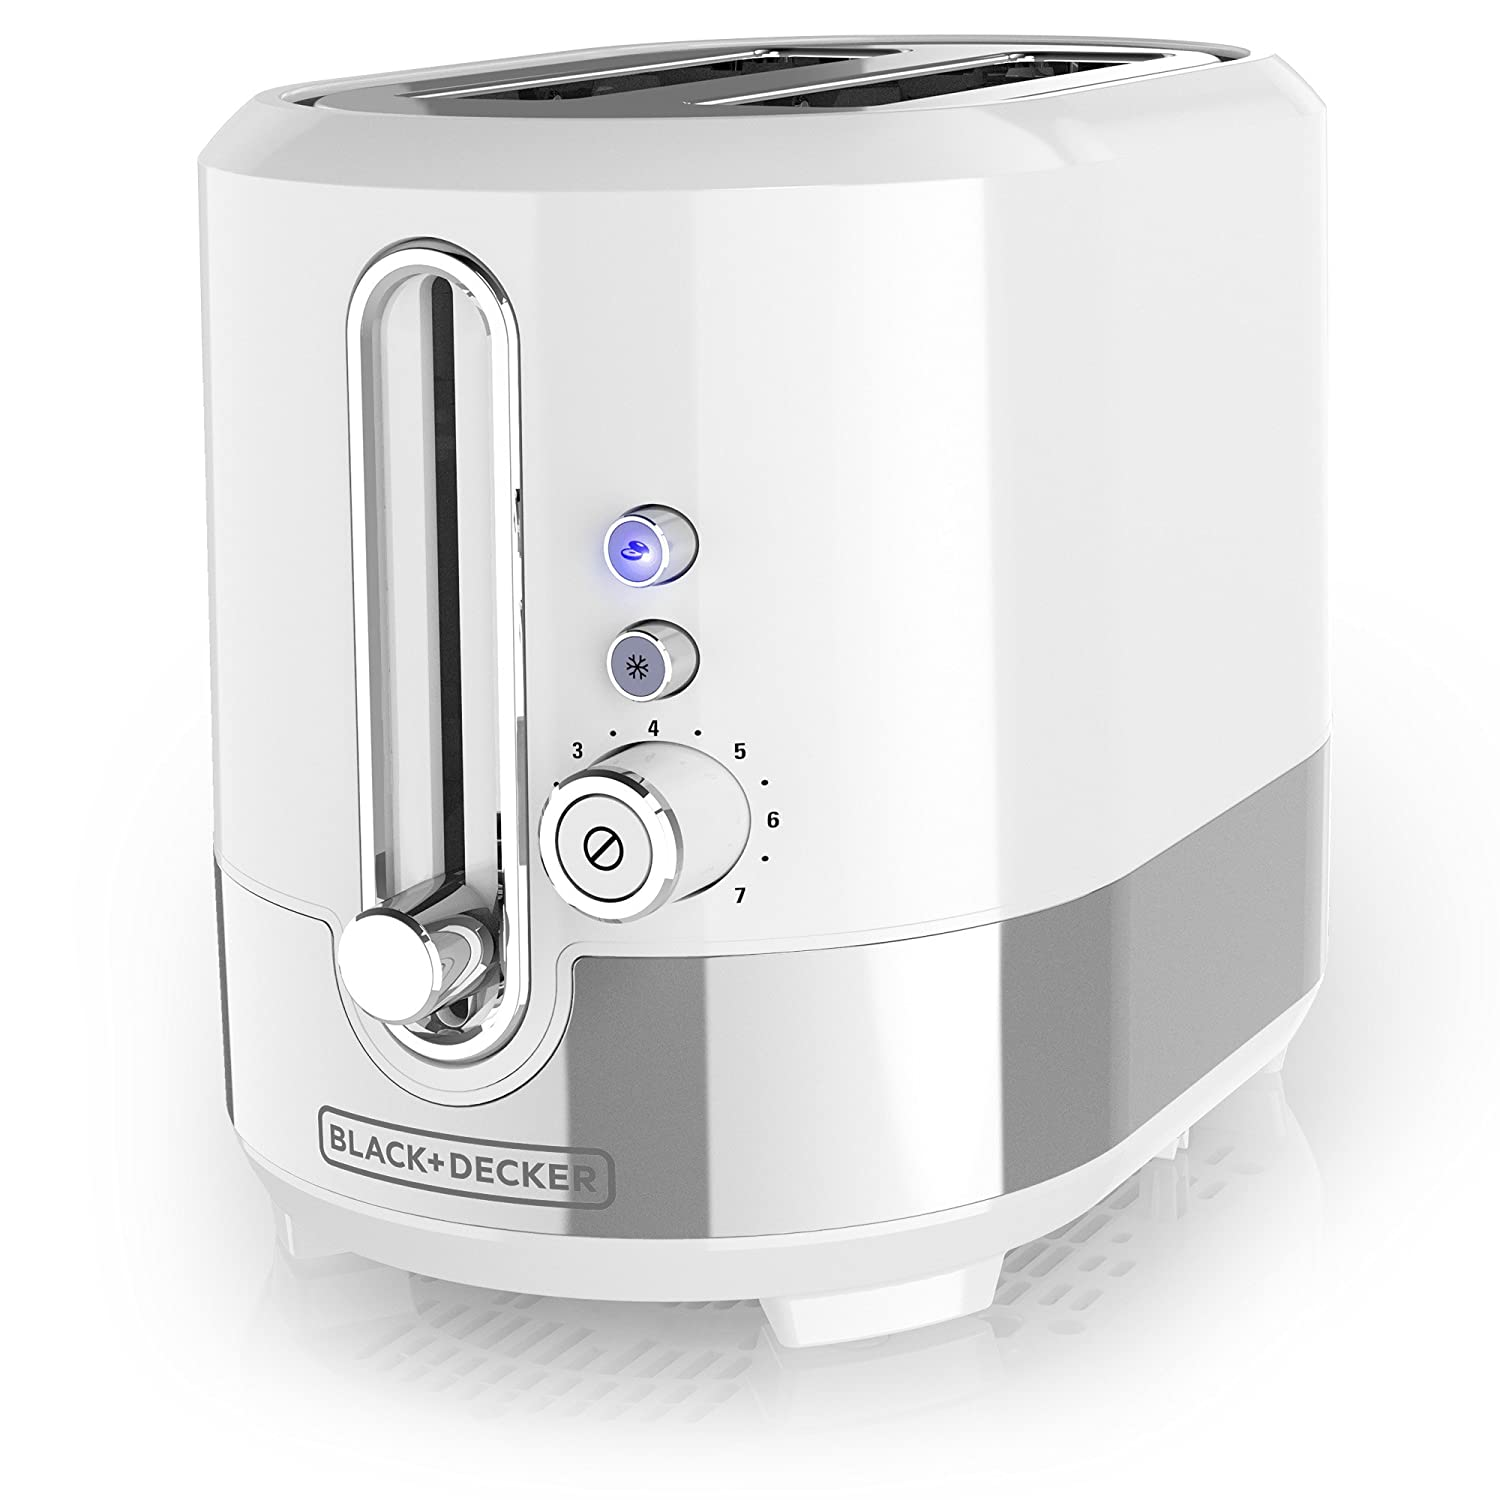 BLACK DECKER TR2200WSD Applica spectrum Brands Tr2200swd White 2 Slice Toaster, Medium,